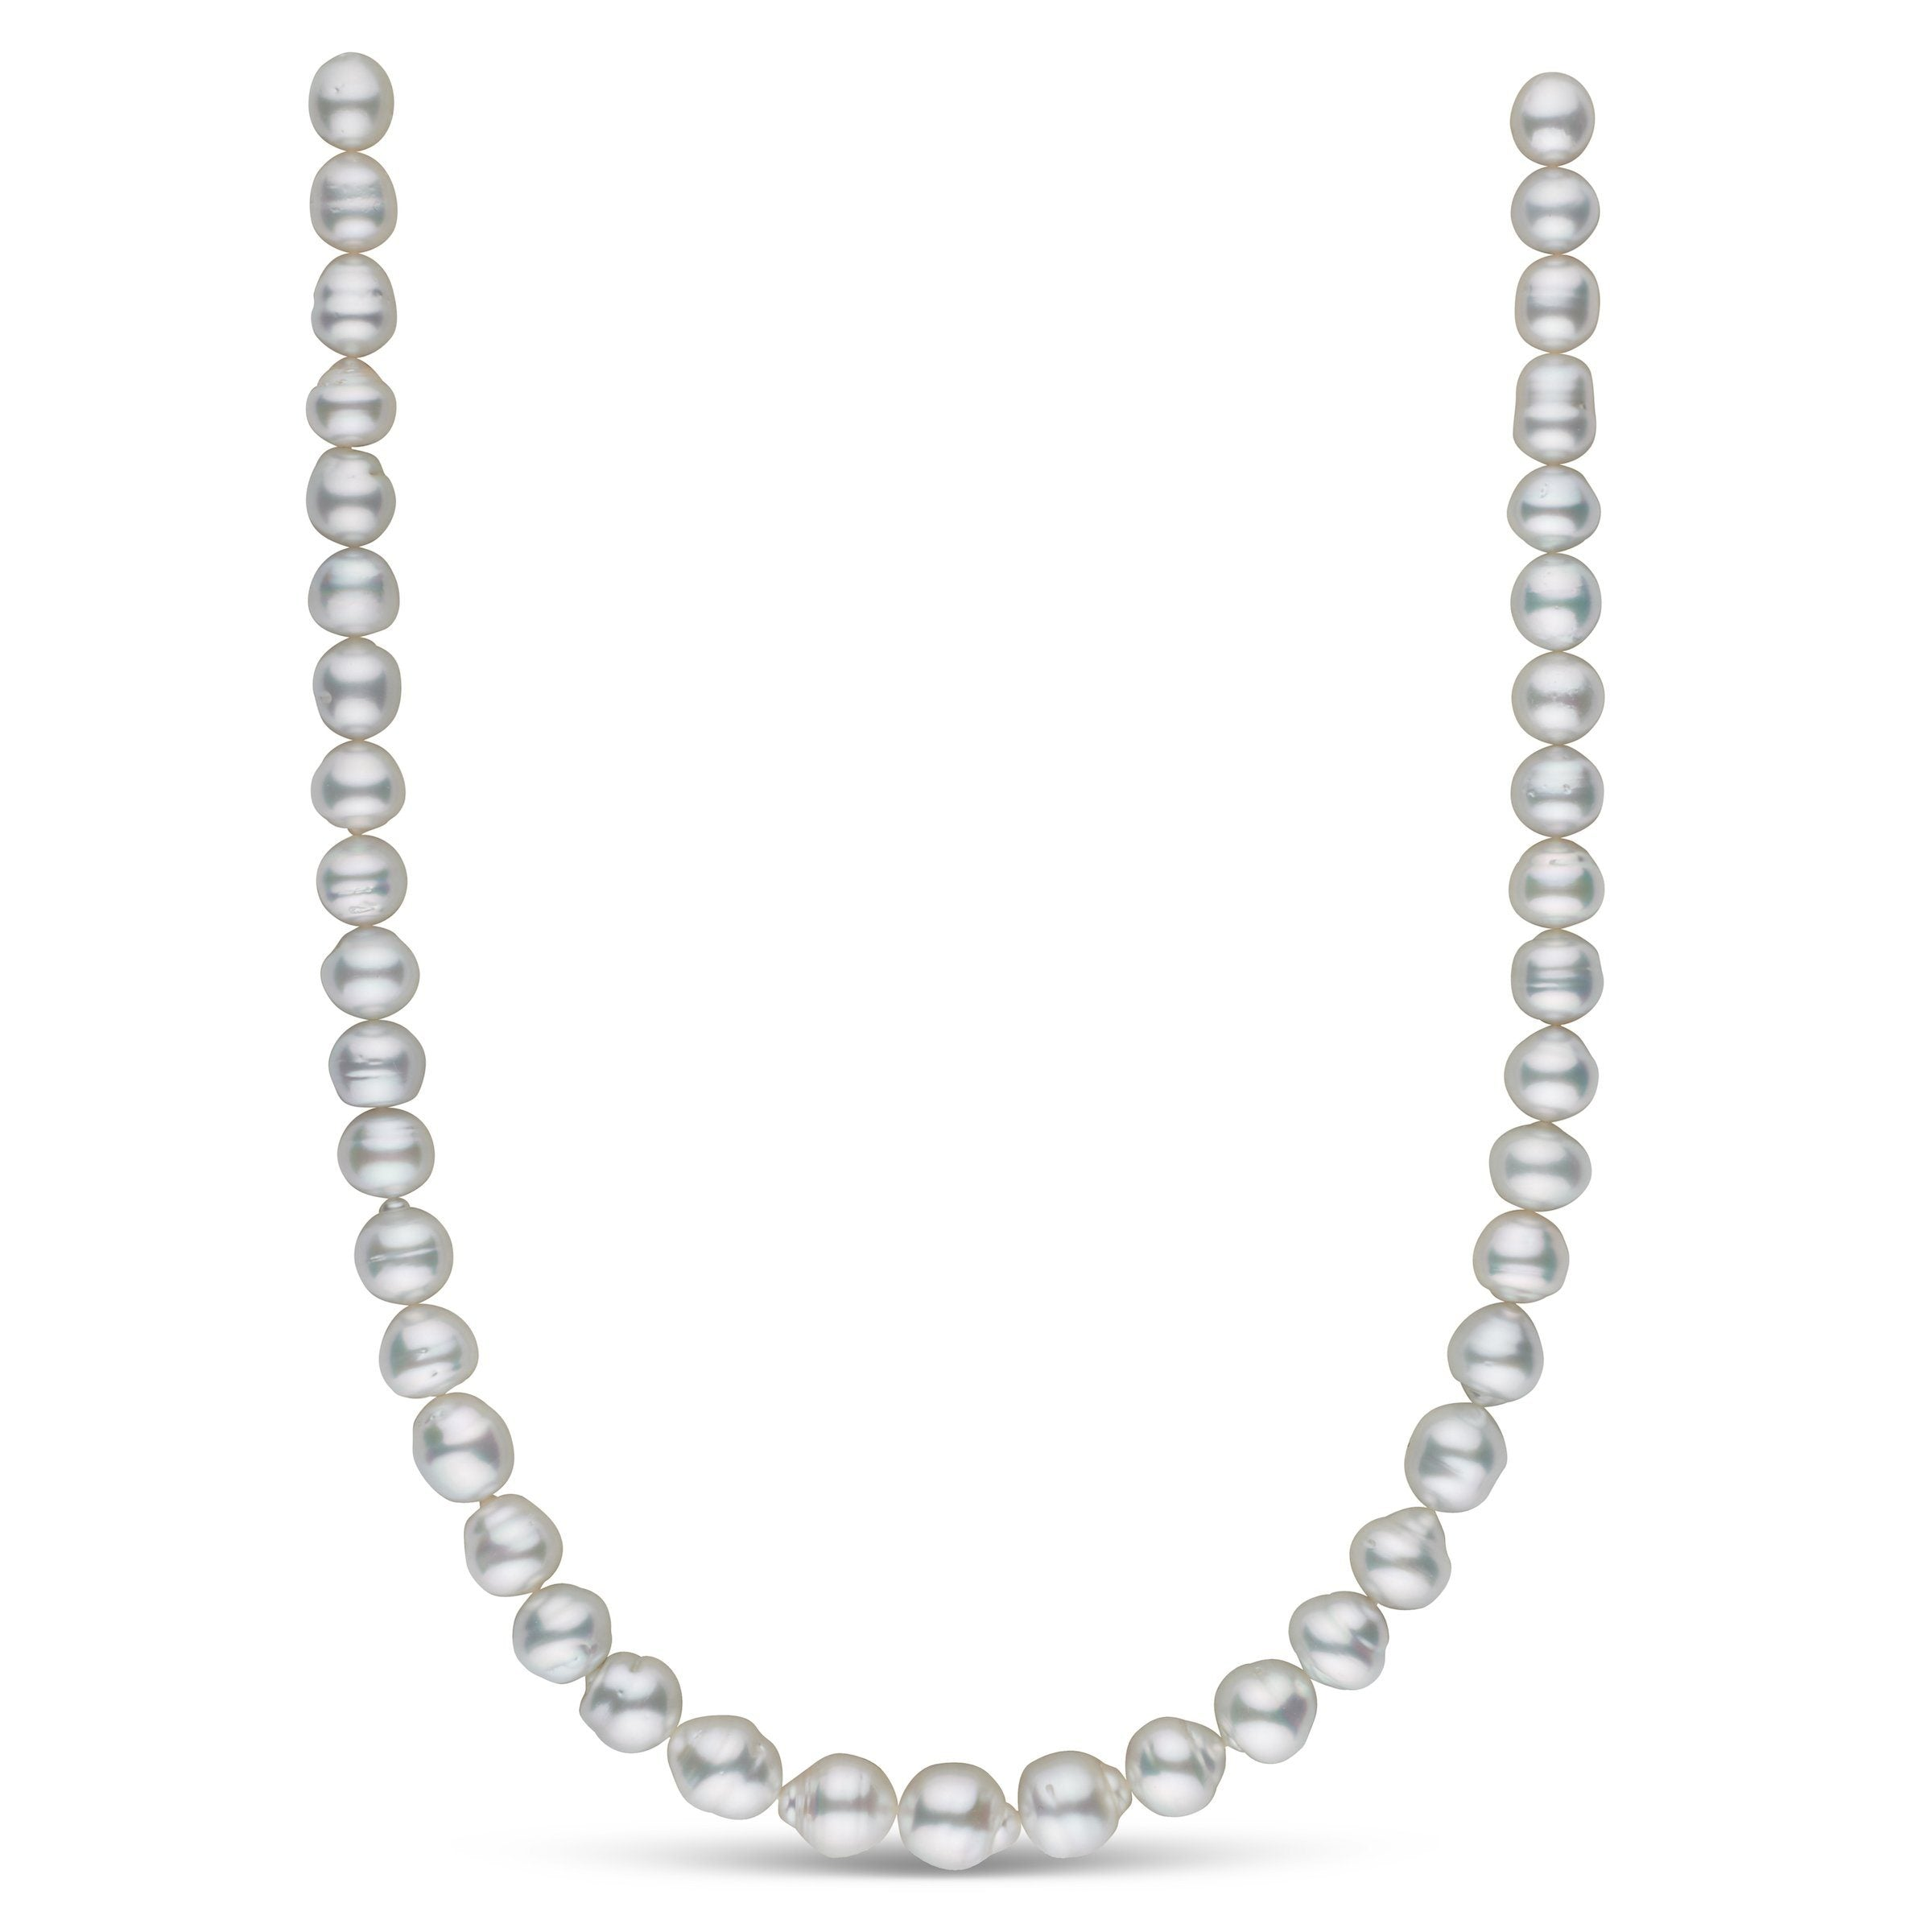 8.7-11.1 mm AA+/AAA White South Sea Baroque Necklace